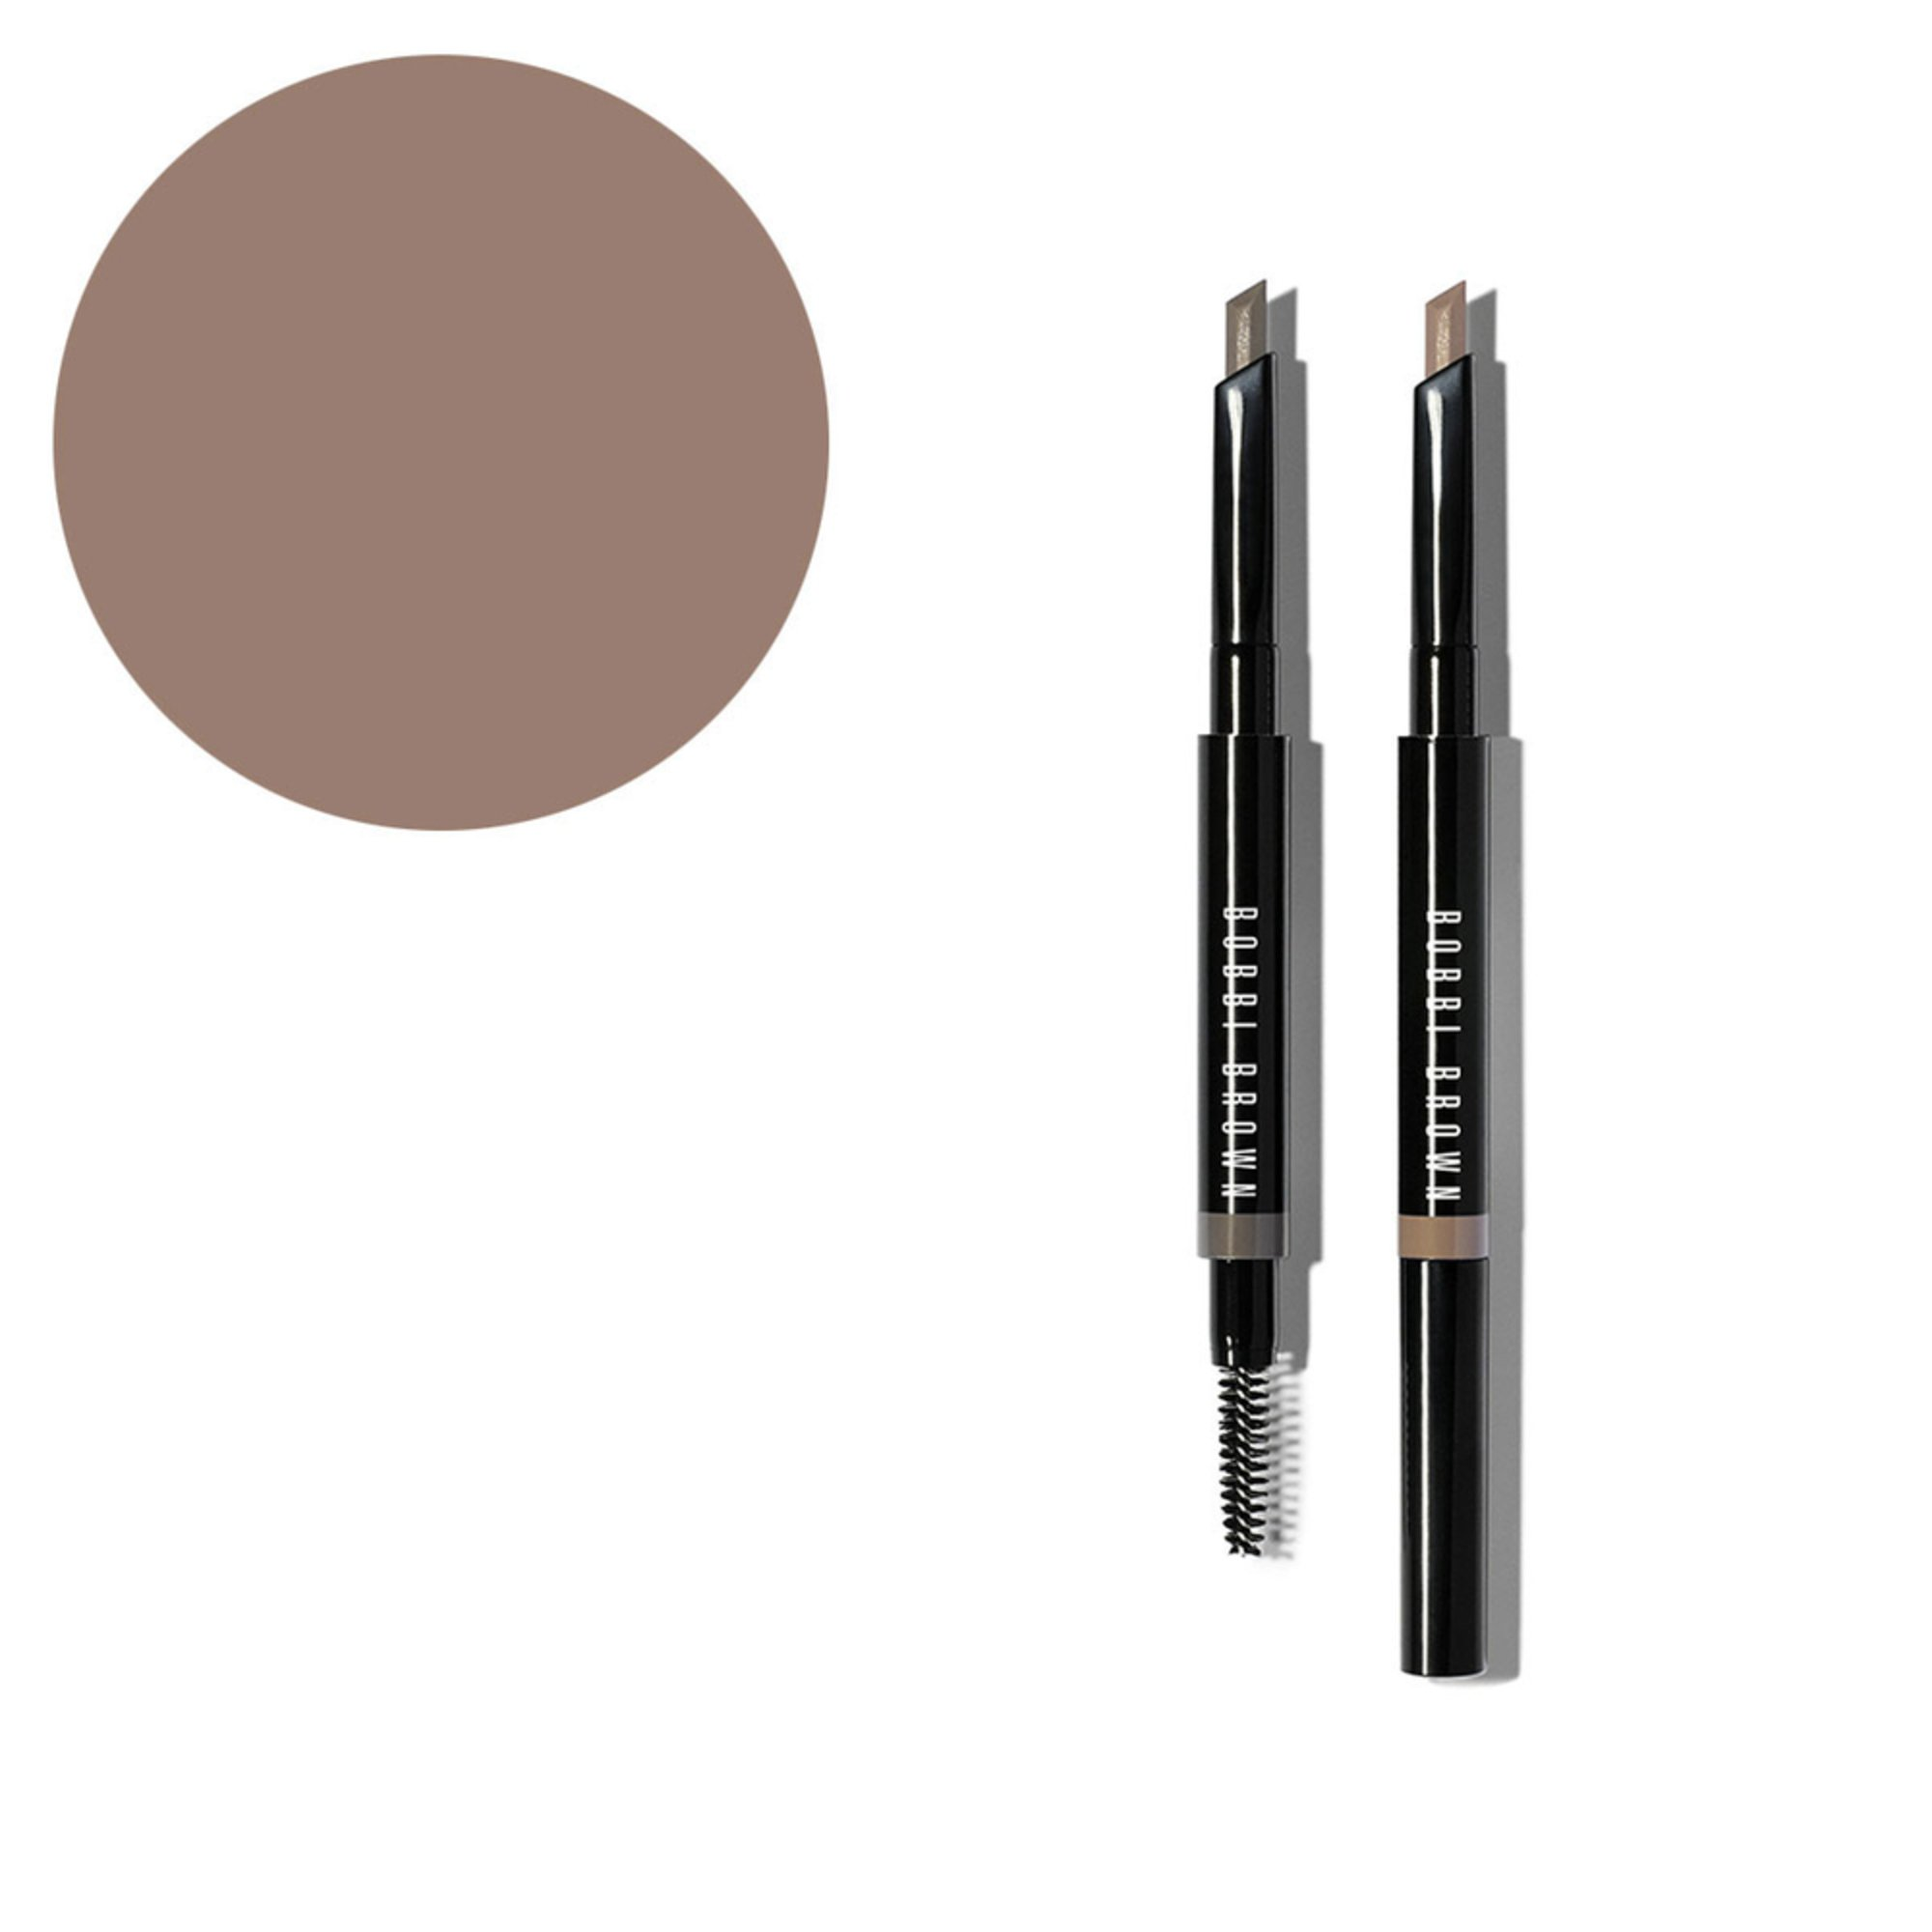 Bobbi Brown Perfectly Defined Long Wear Brow Pencil Eyebrows